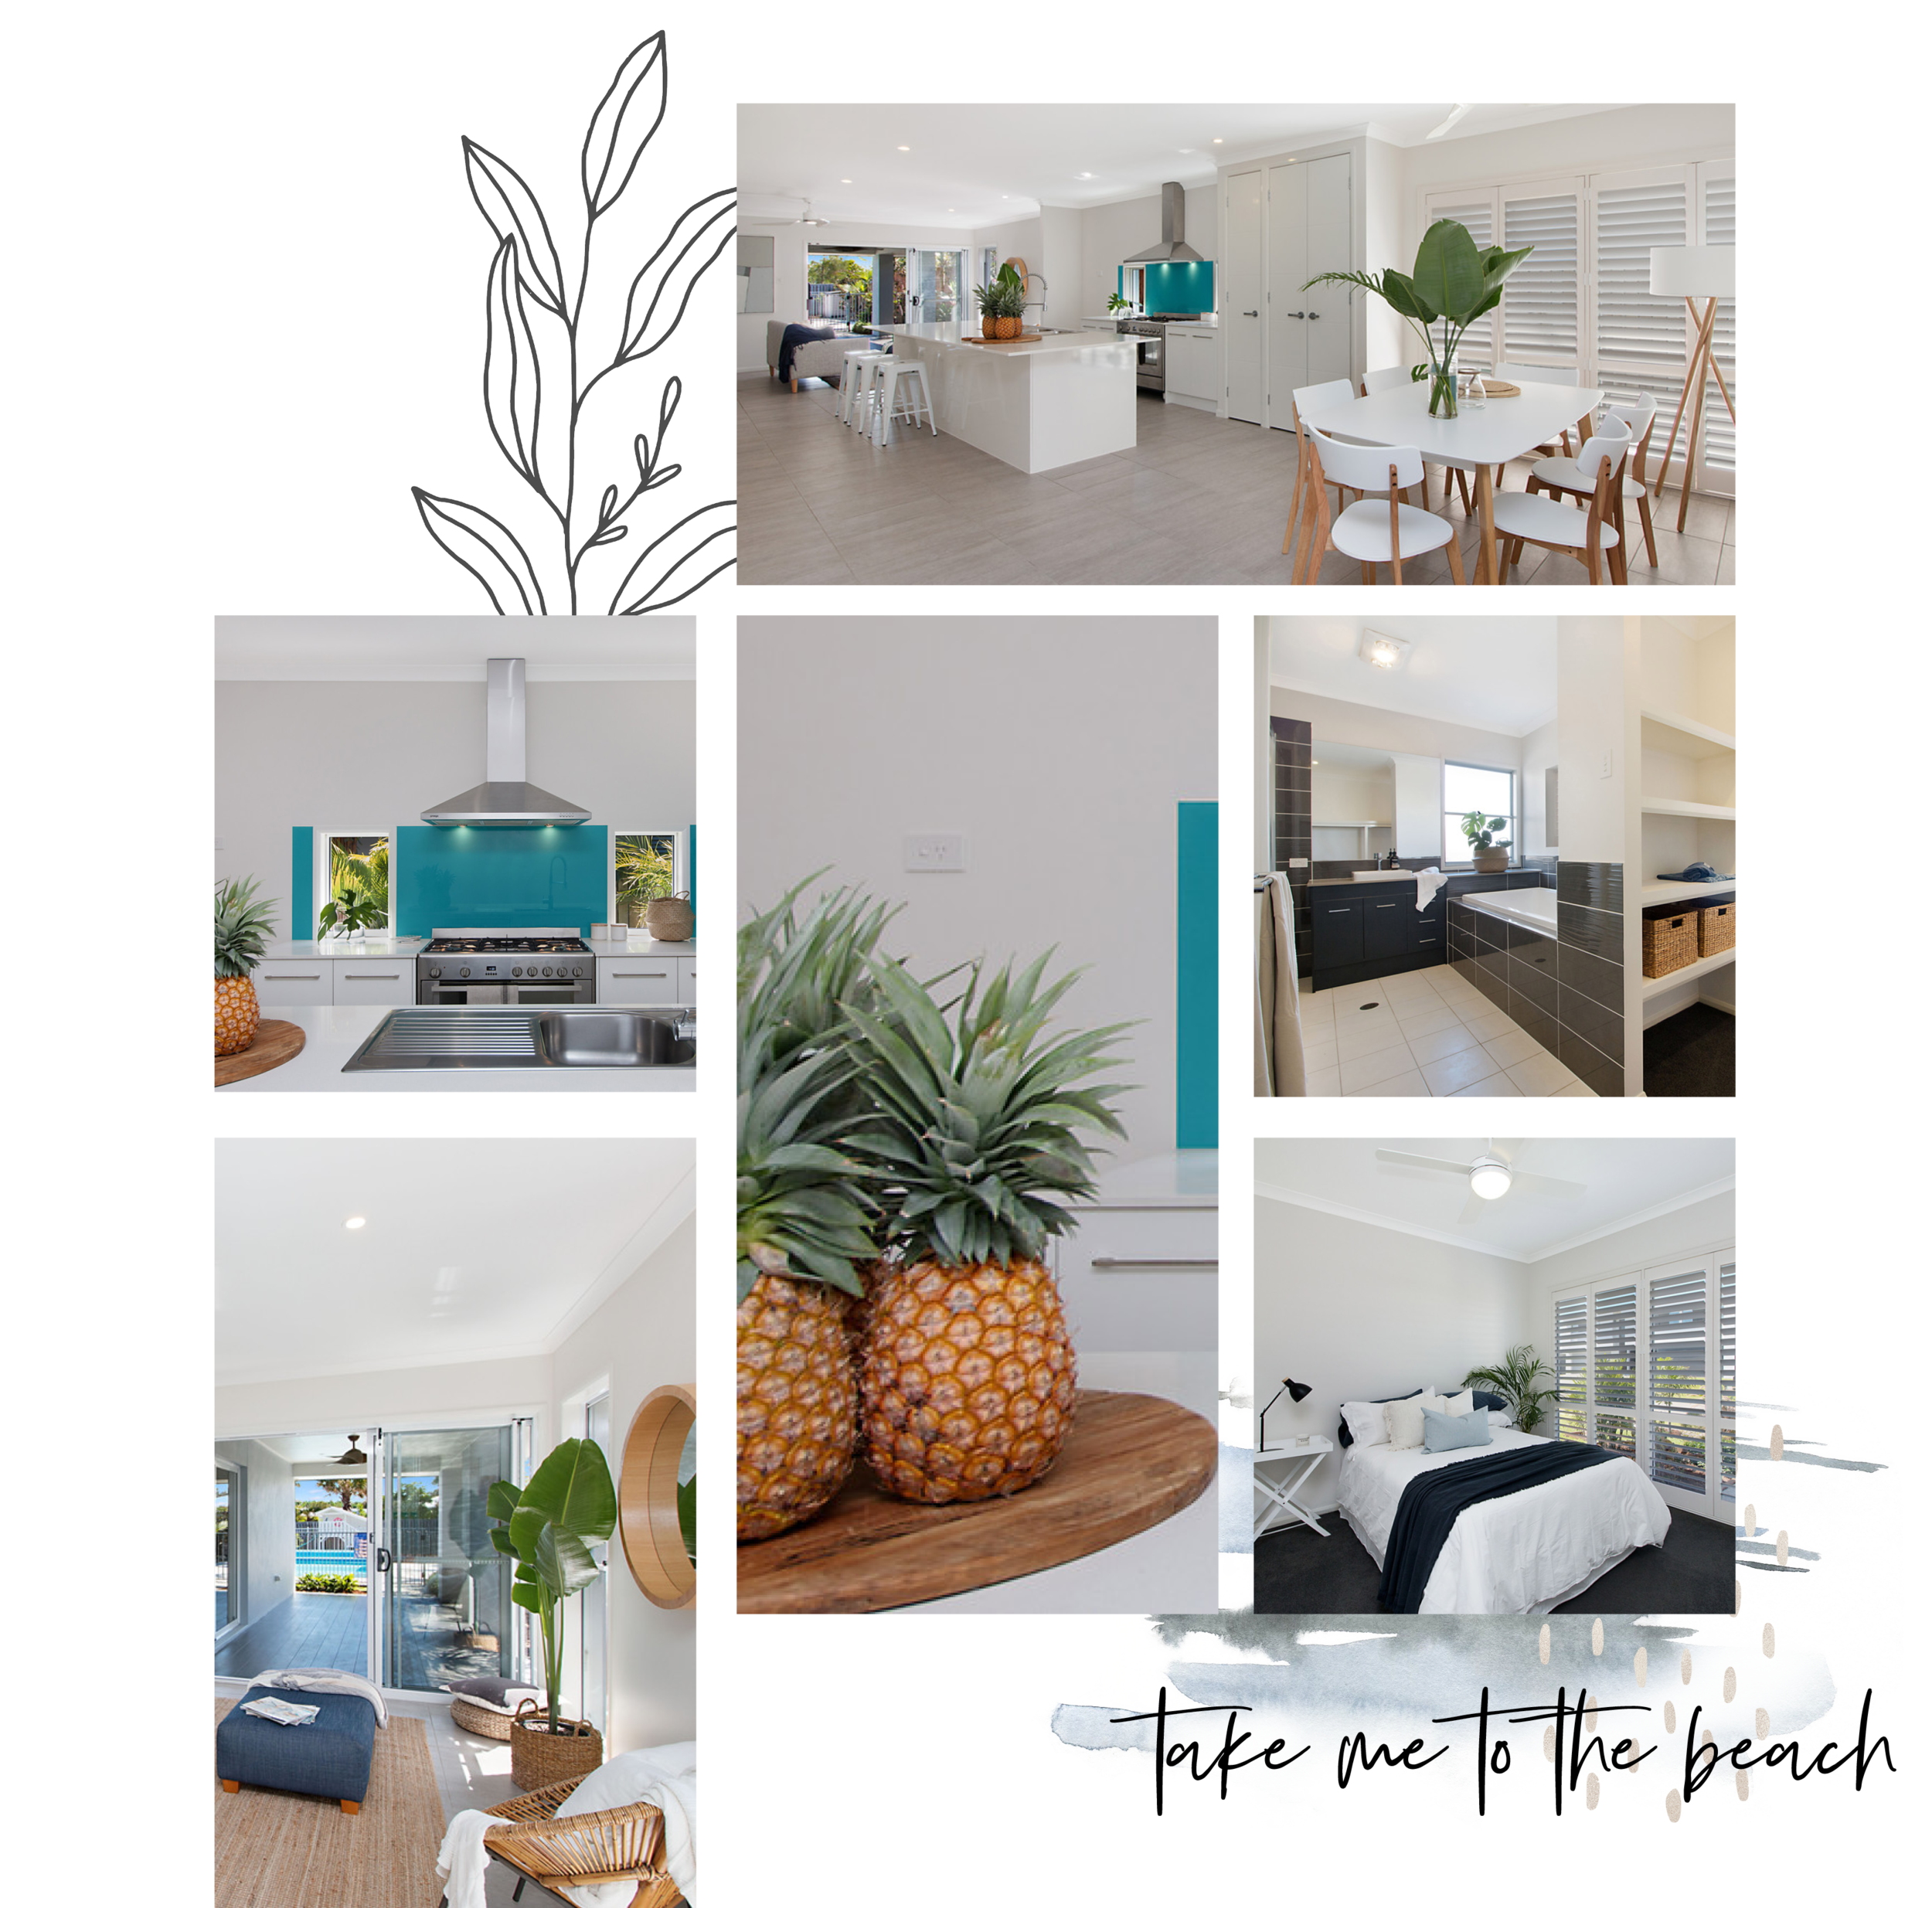 Kingscliff Tweed Coast Property Styling Project by Wild Rabbit Interiors